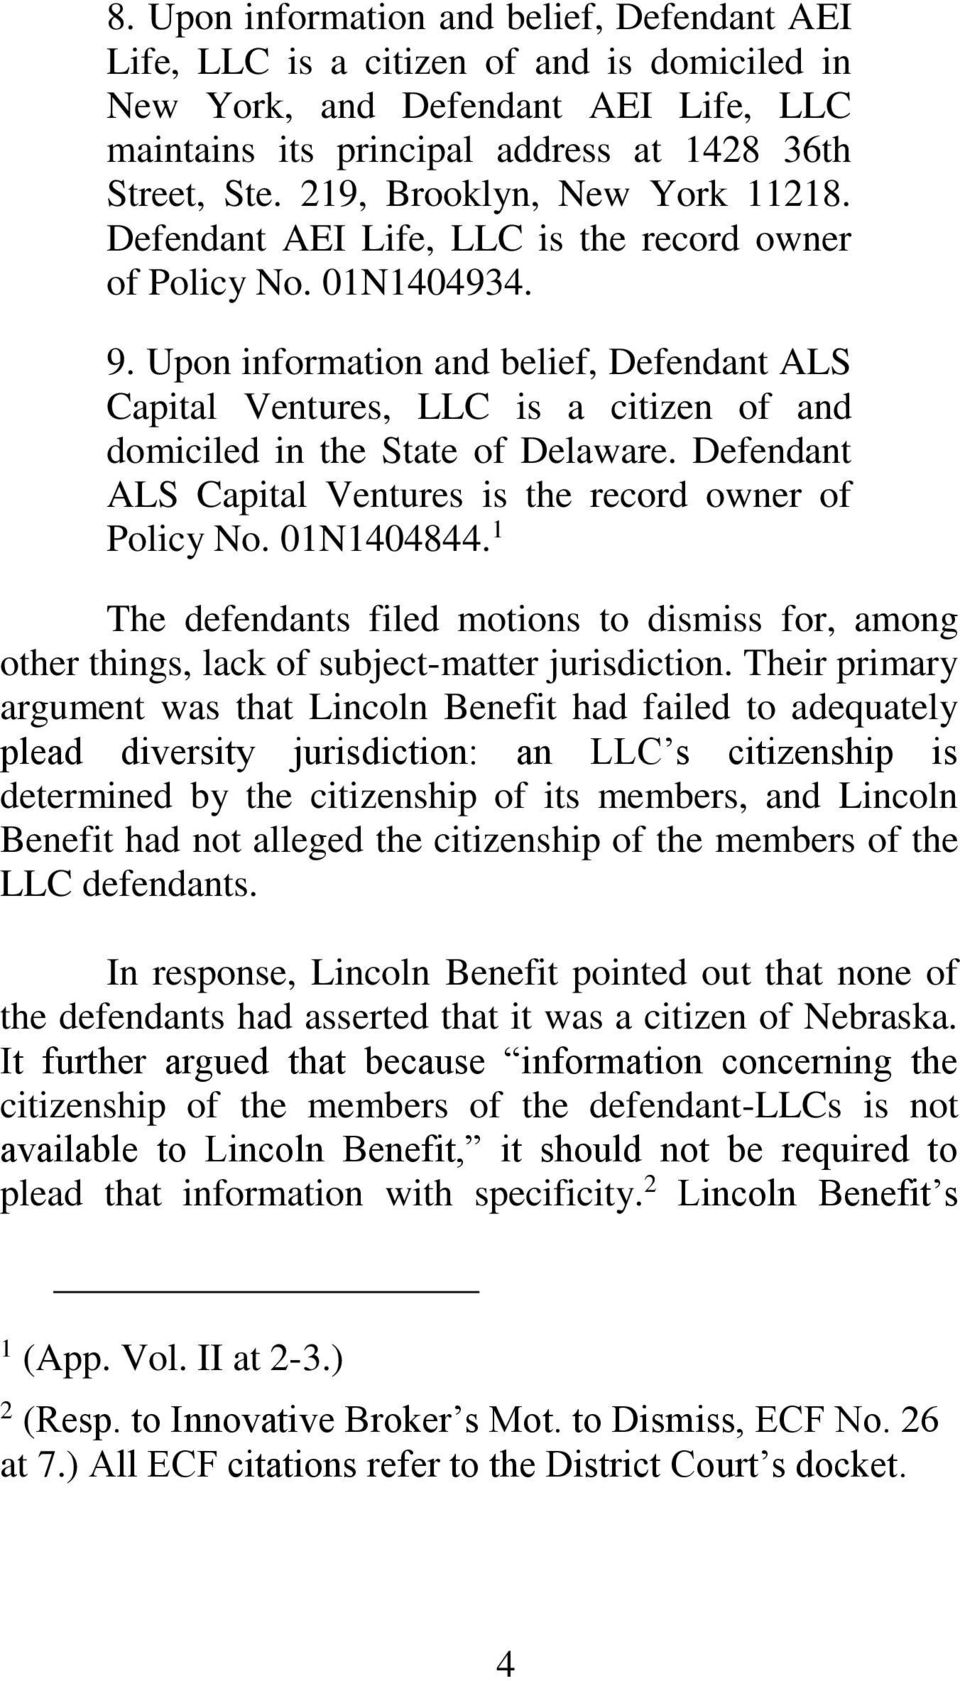 Upon information and belief, Defendant ALS Capital Ventures, LLC is a citizen of and domiciled in the State of Delaware. Defendant ALS Capital Ventures is the record owner of Policy No. 01N1404844.